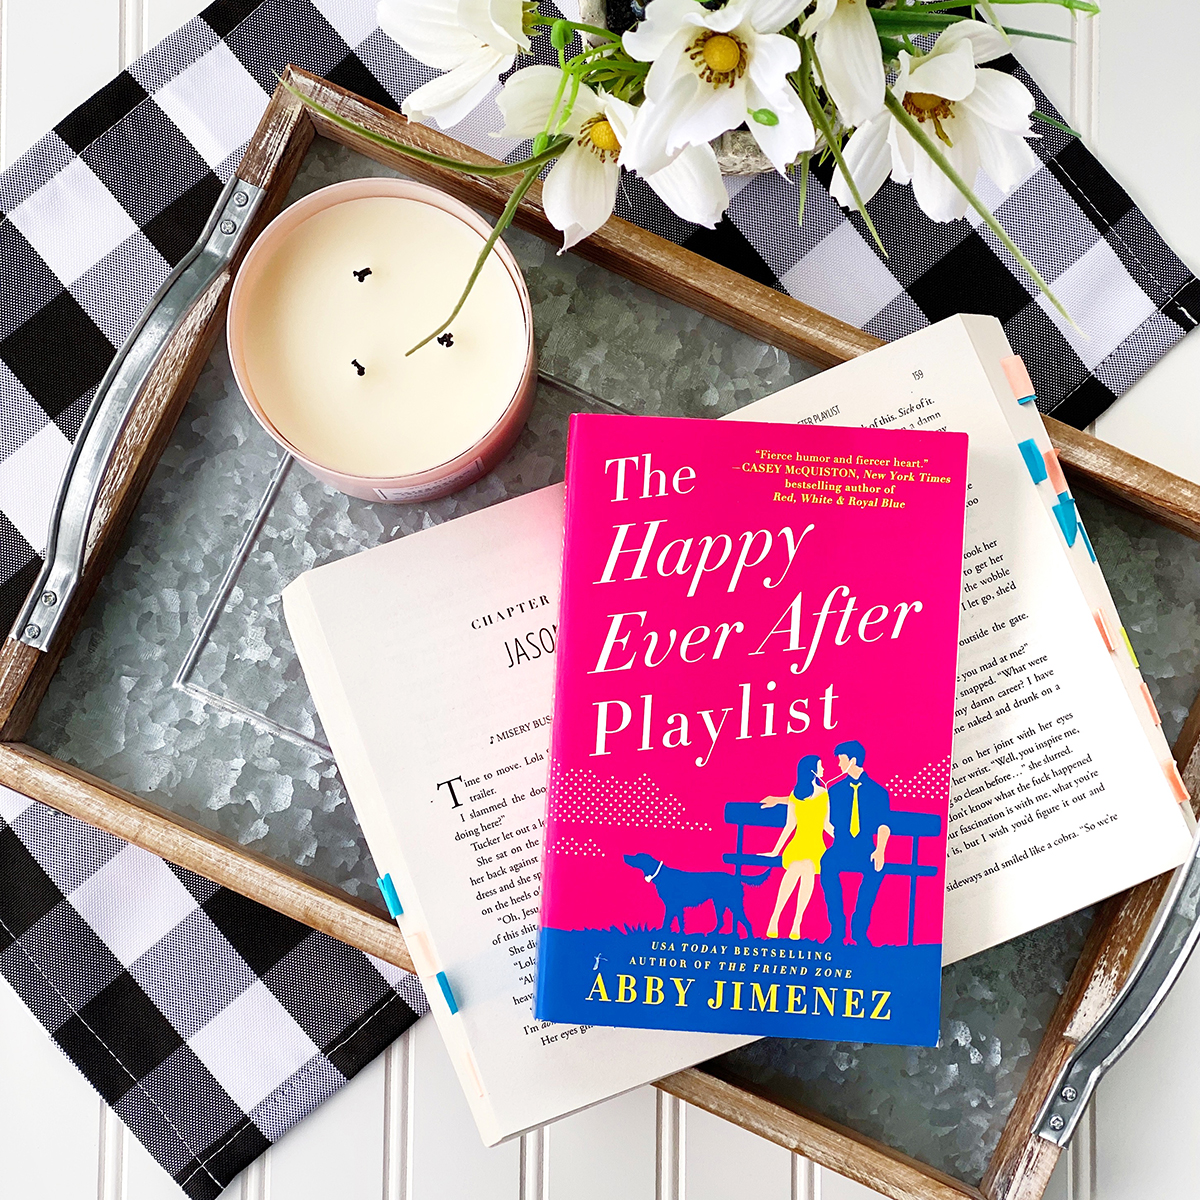 In Review: The Happy Ever After Playlist by Abby Jimenez